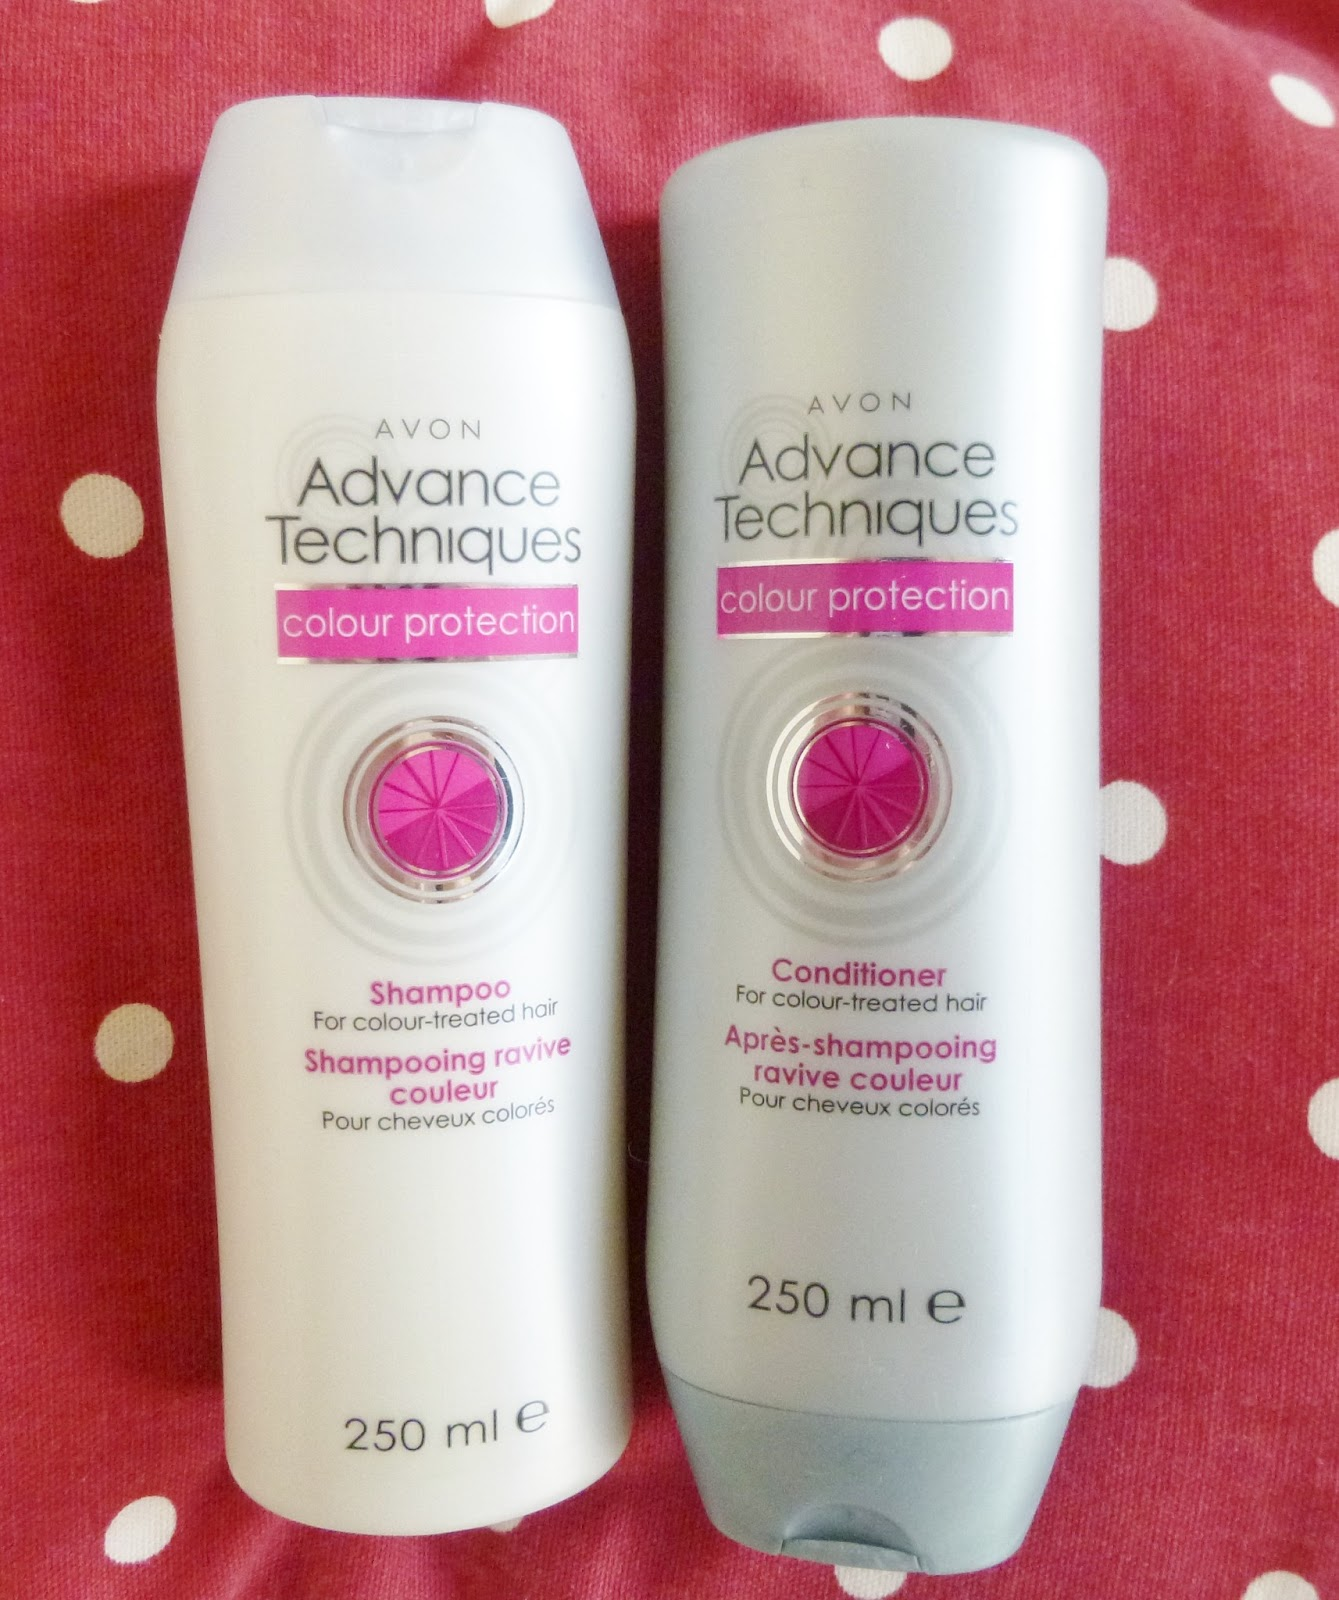 Bees Knees Of Beauty The Best Bargain Shampoo And Conditioner For